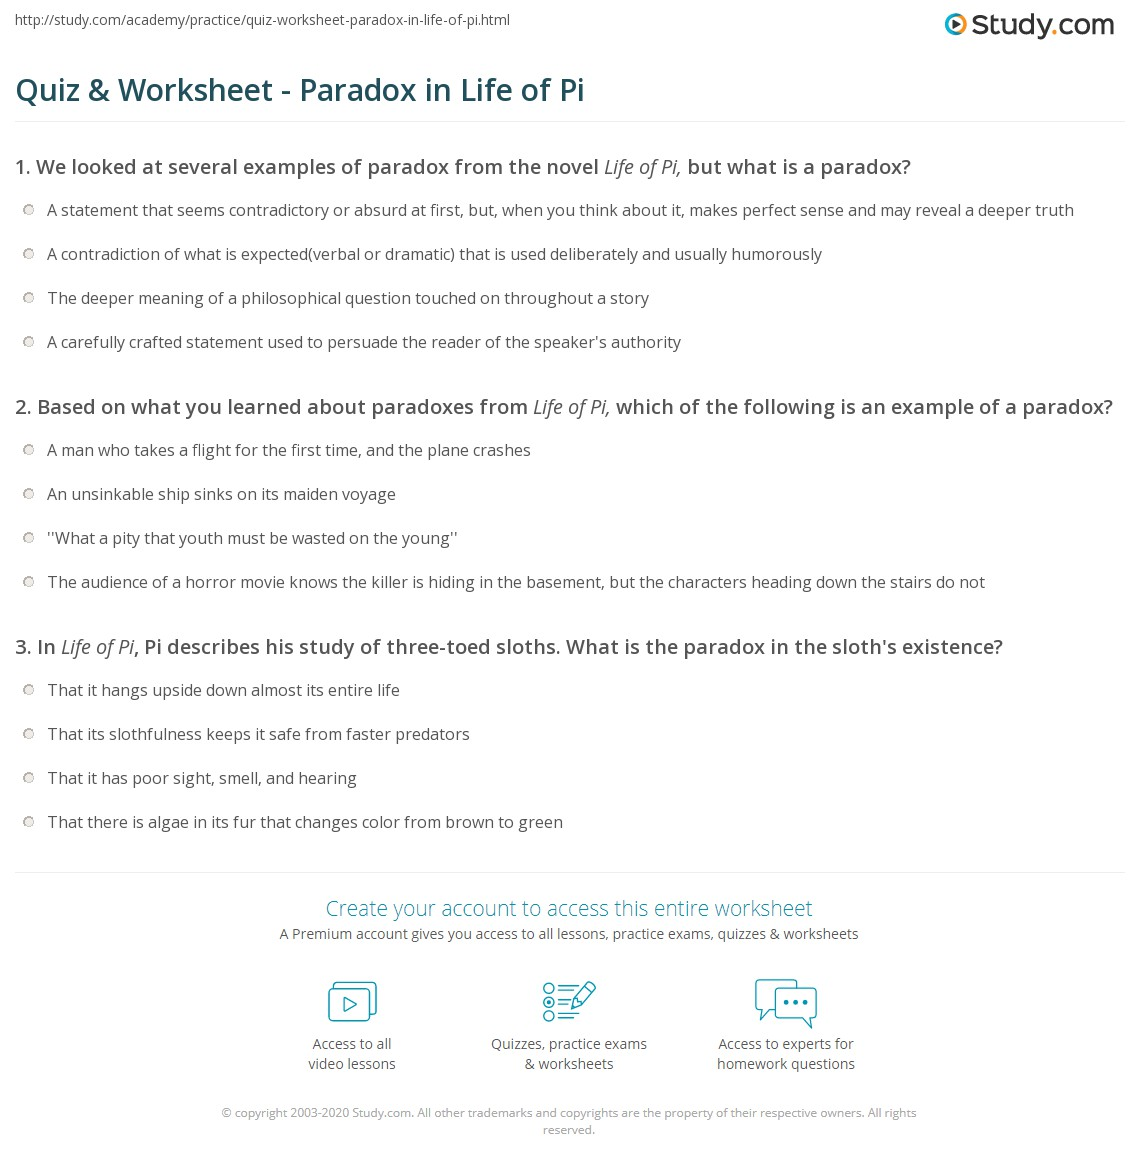 Quiz Worksheet Paradox In Life Of Pi Study